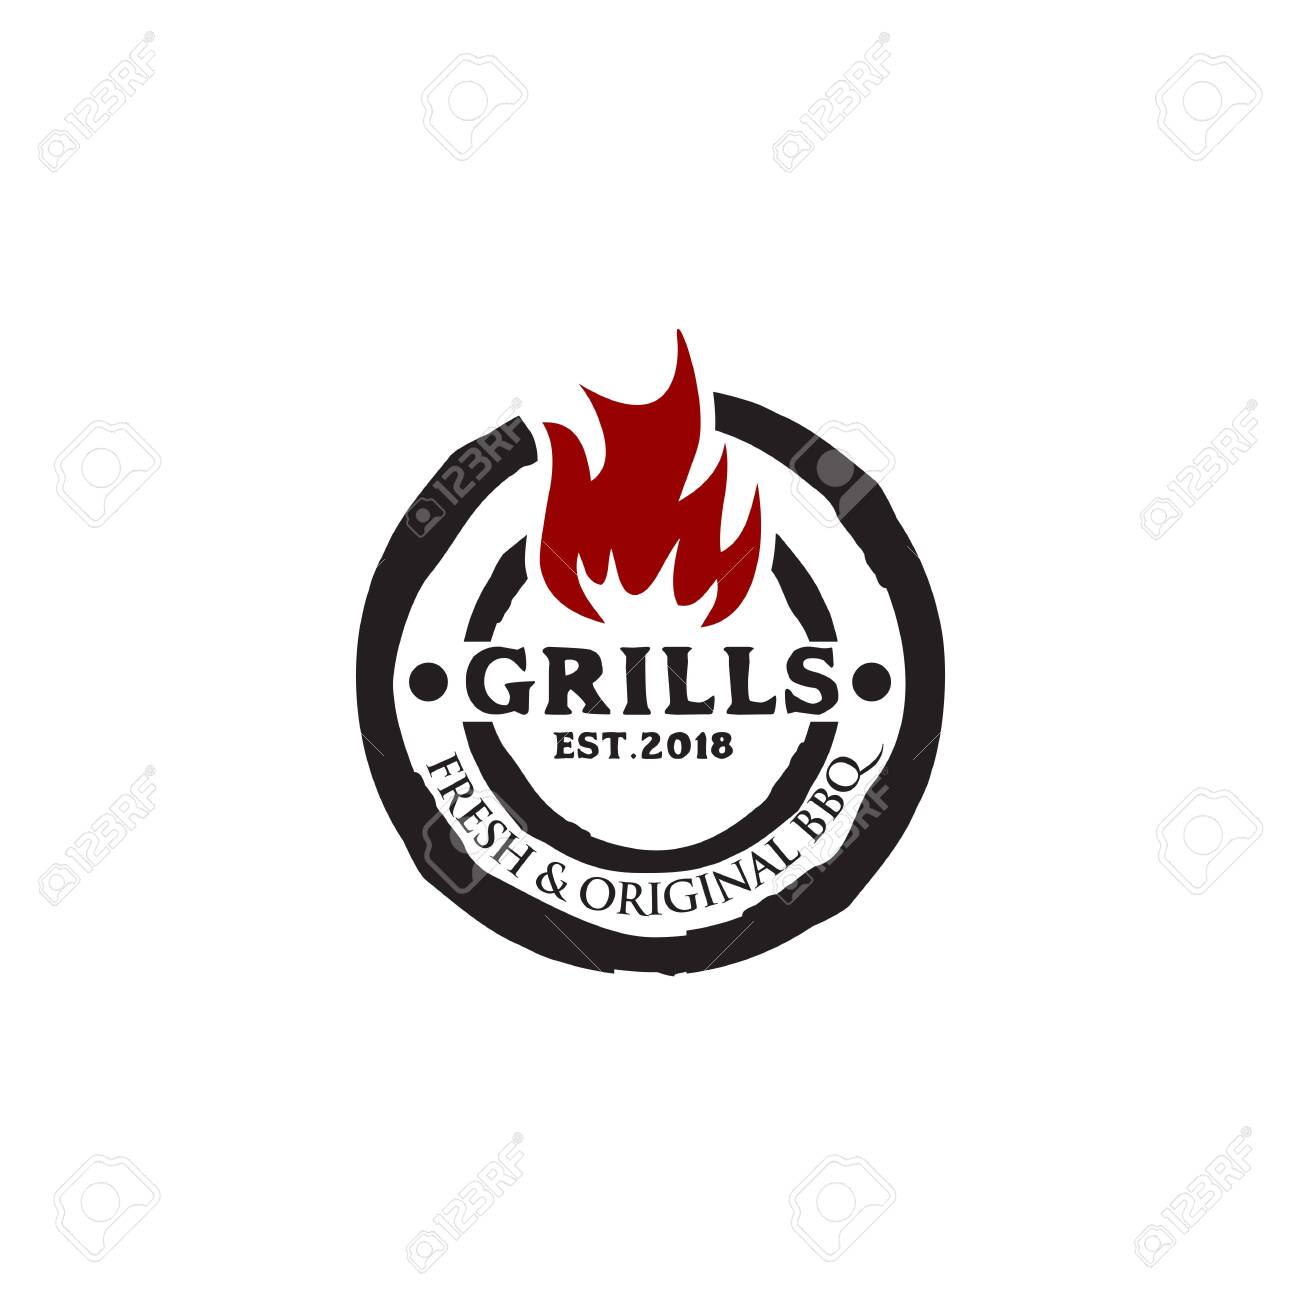 Grills Barbeque Restaurant Logo Design Inspiration Vector Template Royalty Free Cliparts Vectors And Stock Illustration Image 129604324